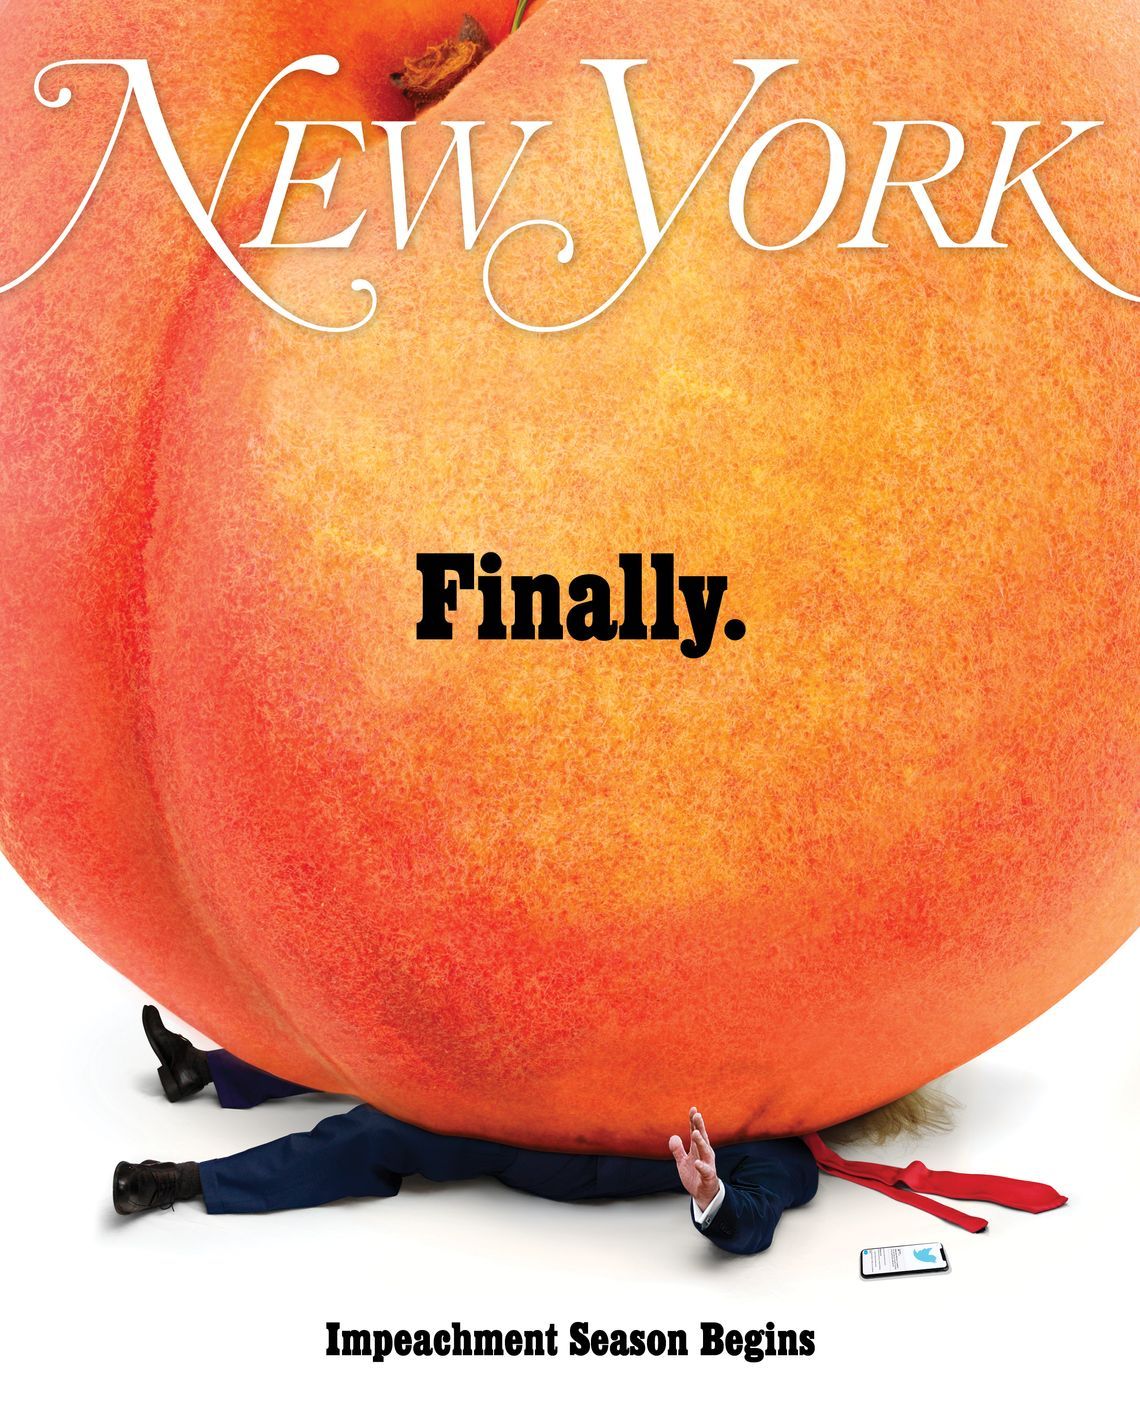 On the Cover of New York Magazine: Impeachment Season Begins